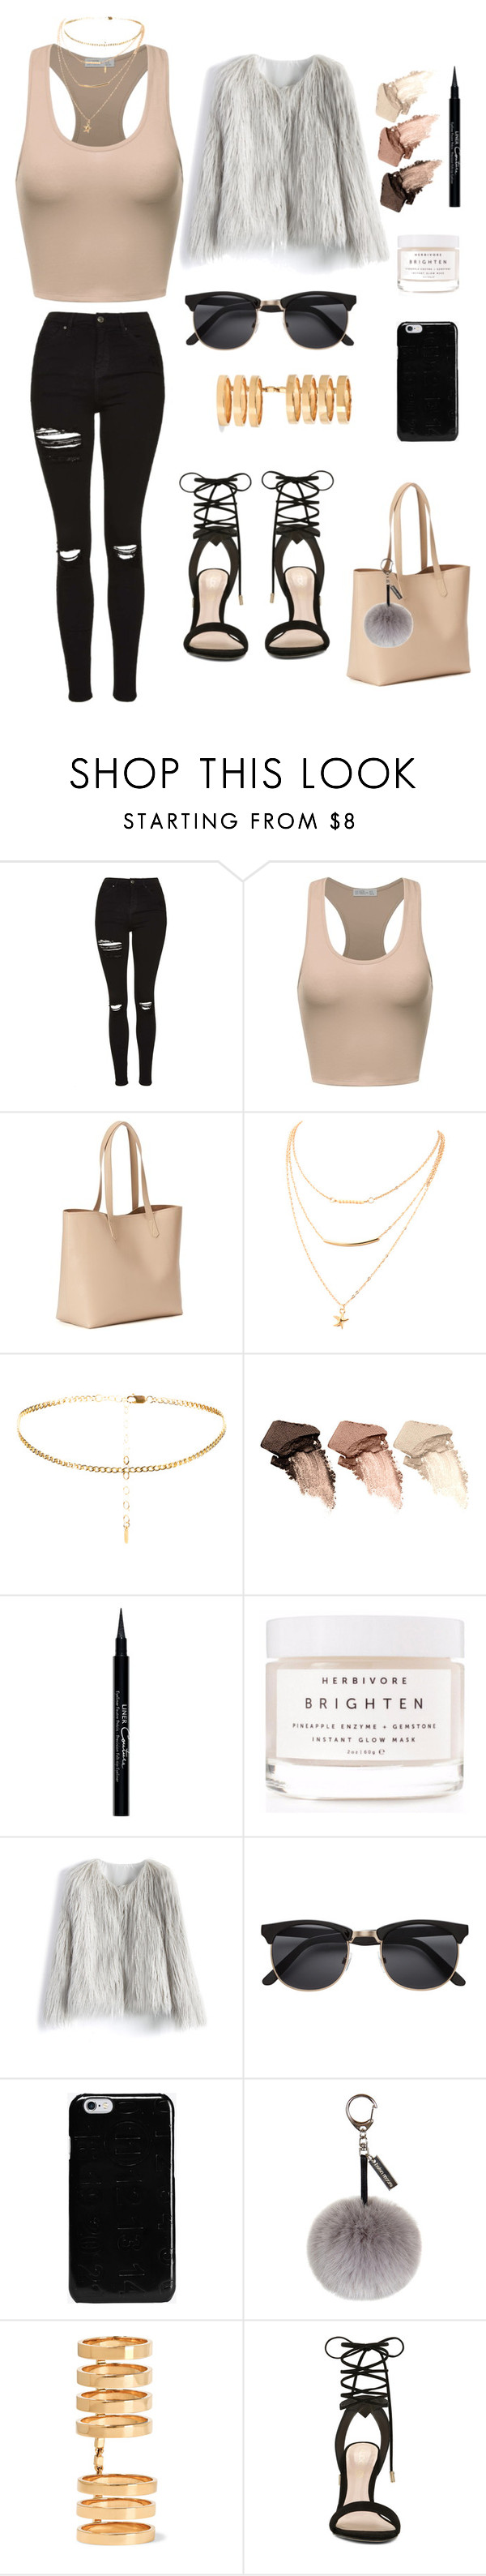 """""""Untitled #63"""" by melisamelipop ❤ liked on Polyvore featuring Topshop, Old Navy, Urban Decay, Givenchy, Herbivore, Chicwish, Maison Margiela, Helen Moore, Repossi and ALDO"""